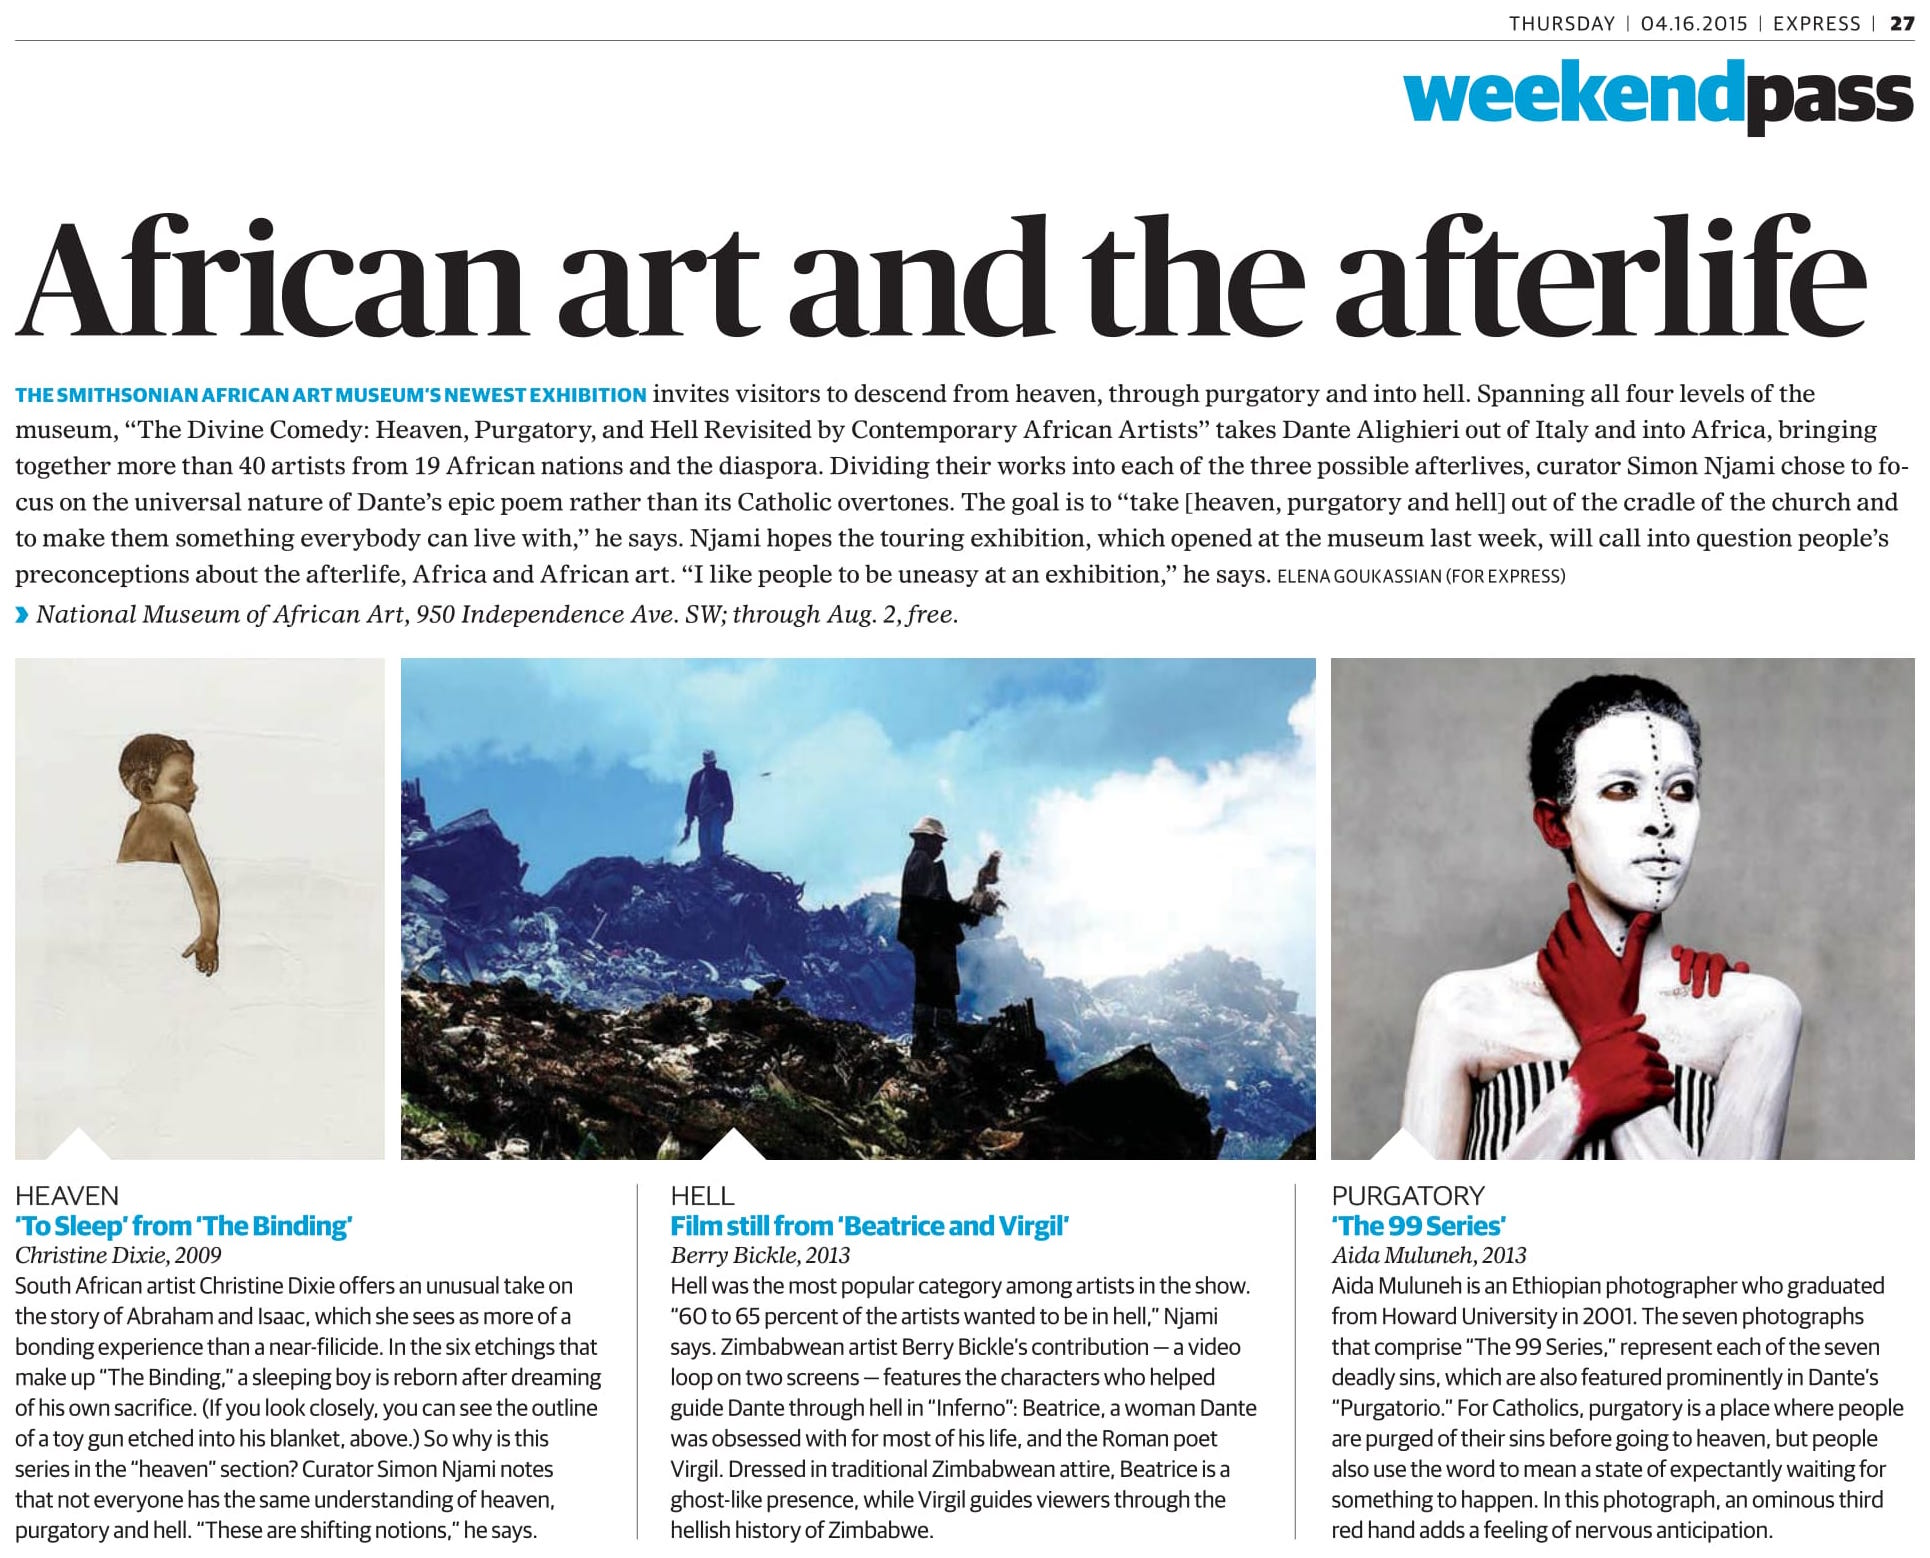 https://www.washingtonpost.com/express/wp/2015/04/16/the-divine-comedy-heaven-purgatory-and-hell-revisited-by-contemporary-african-artists-takes-dante-out-of-italy-and-into-africa